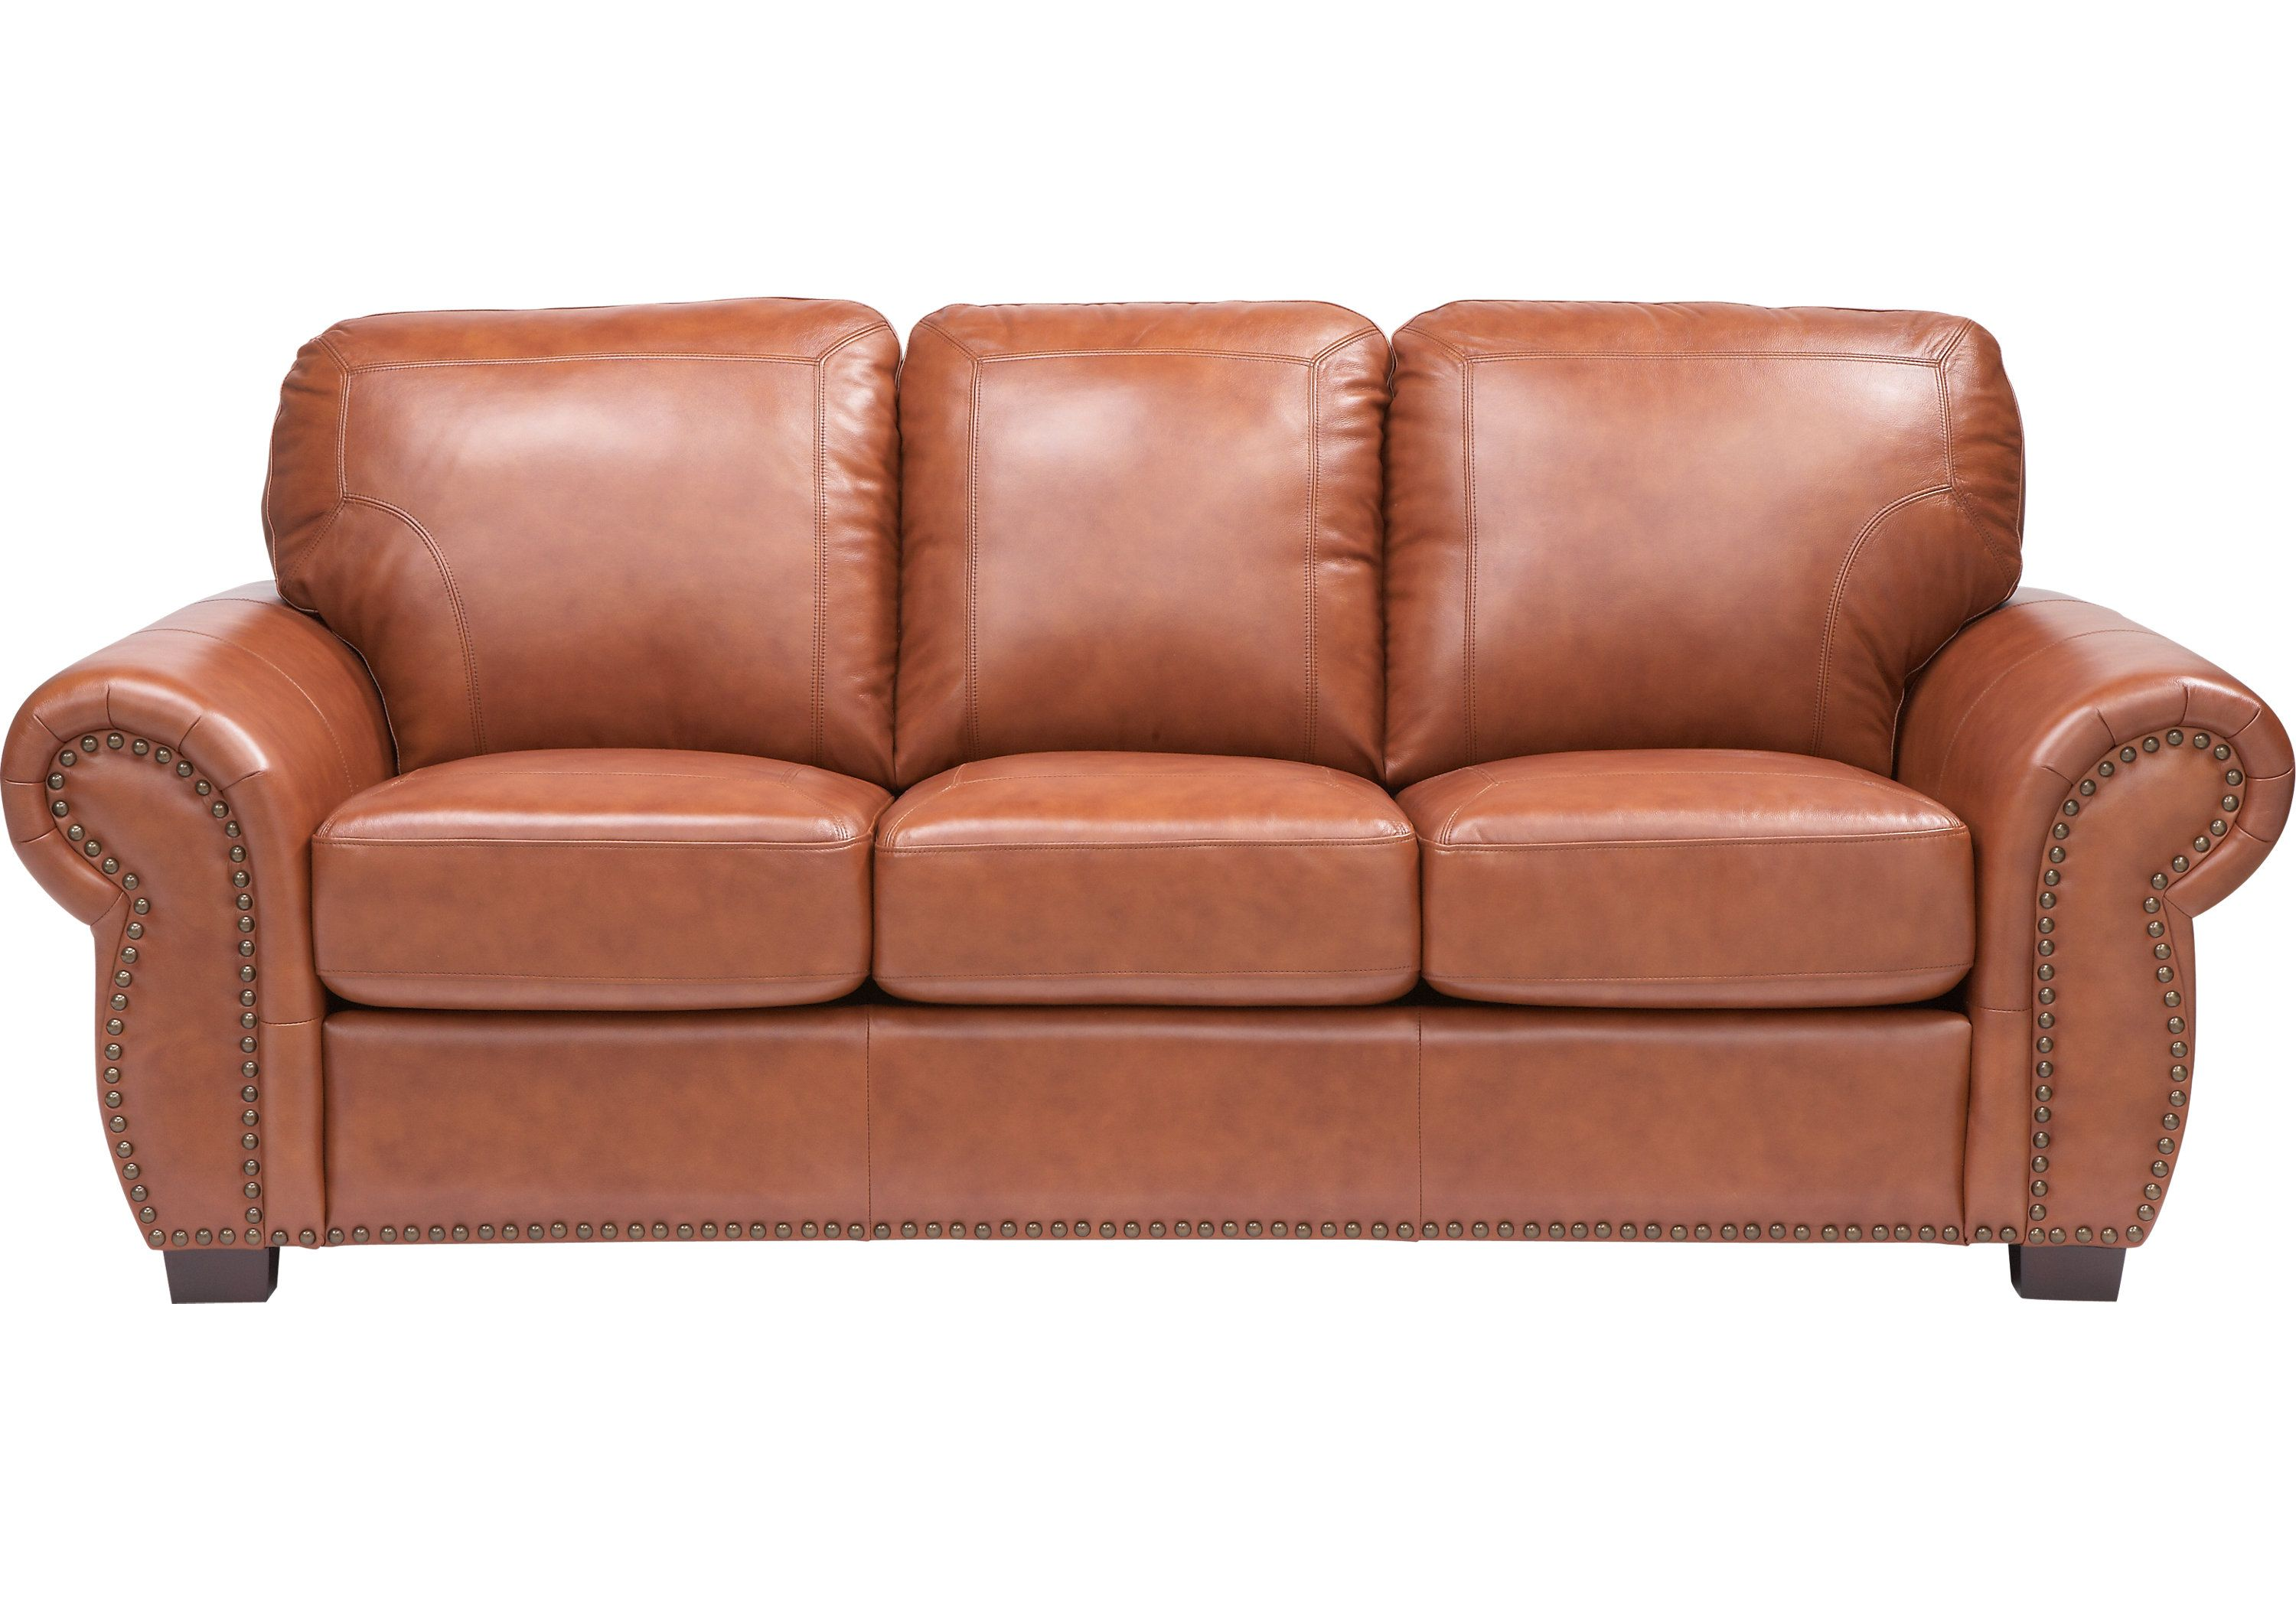 Leather Living Room Chairs Balencia Light Brown Leather Sofa Leather Sofas Furniture